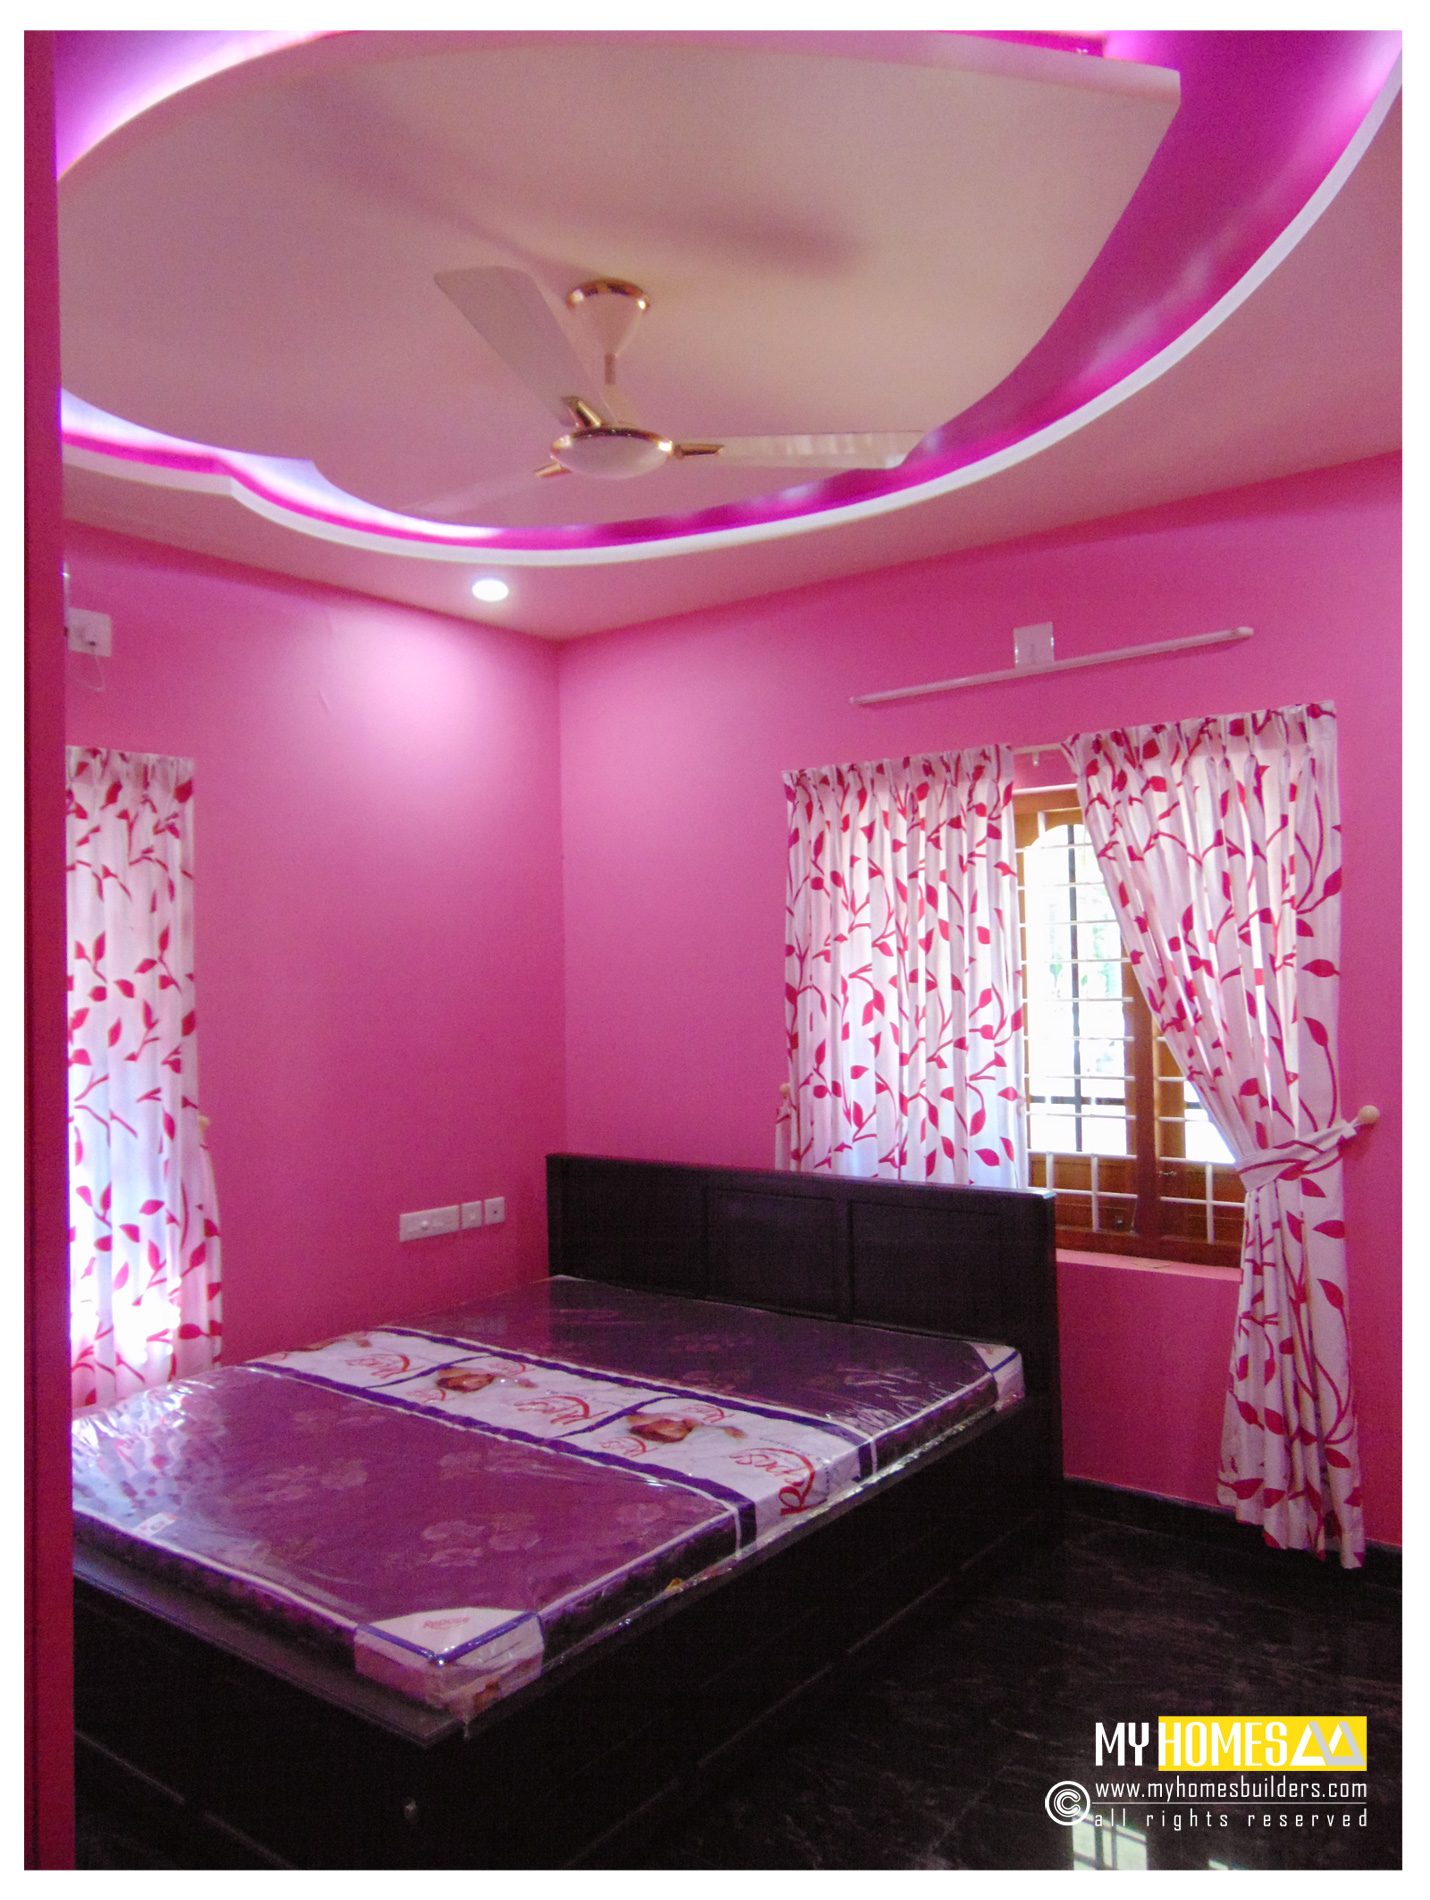 Simple style kerala bedroom designs ideas for home interior for Bedroom designs photos